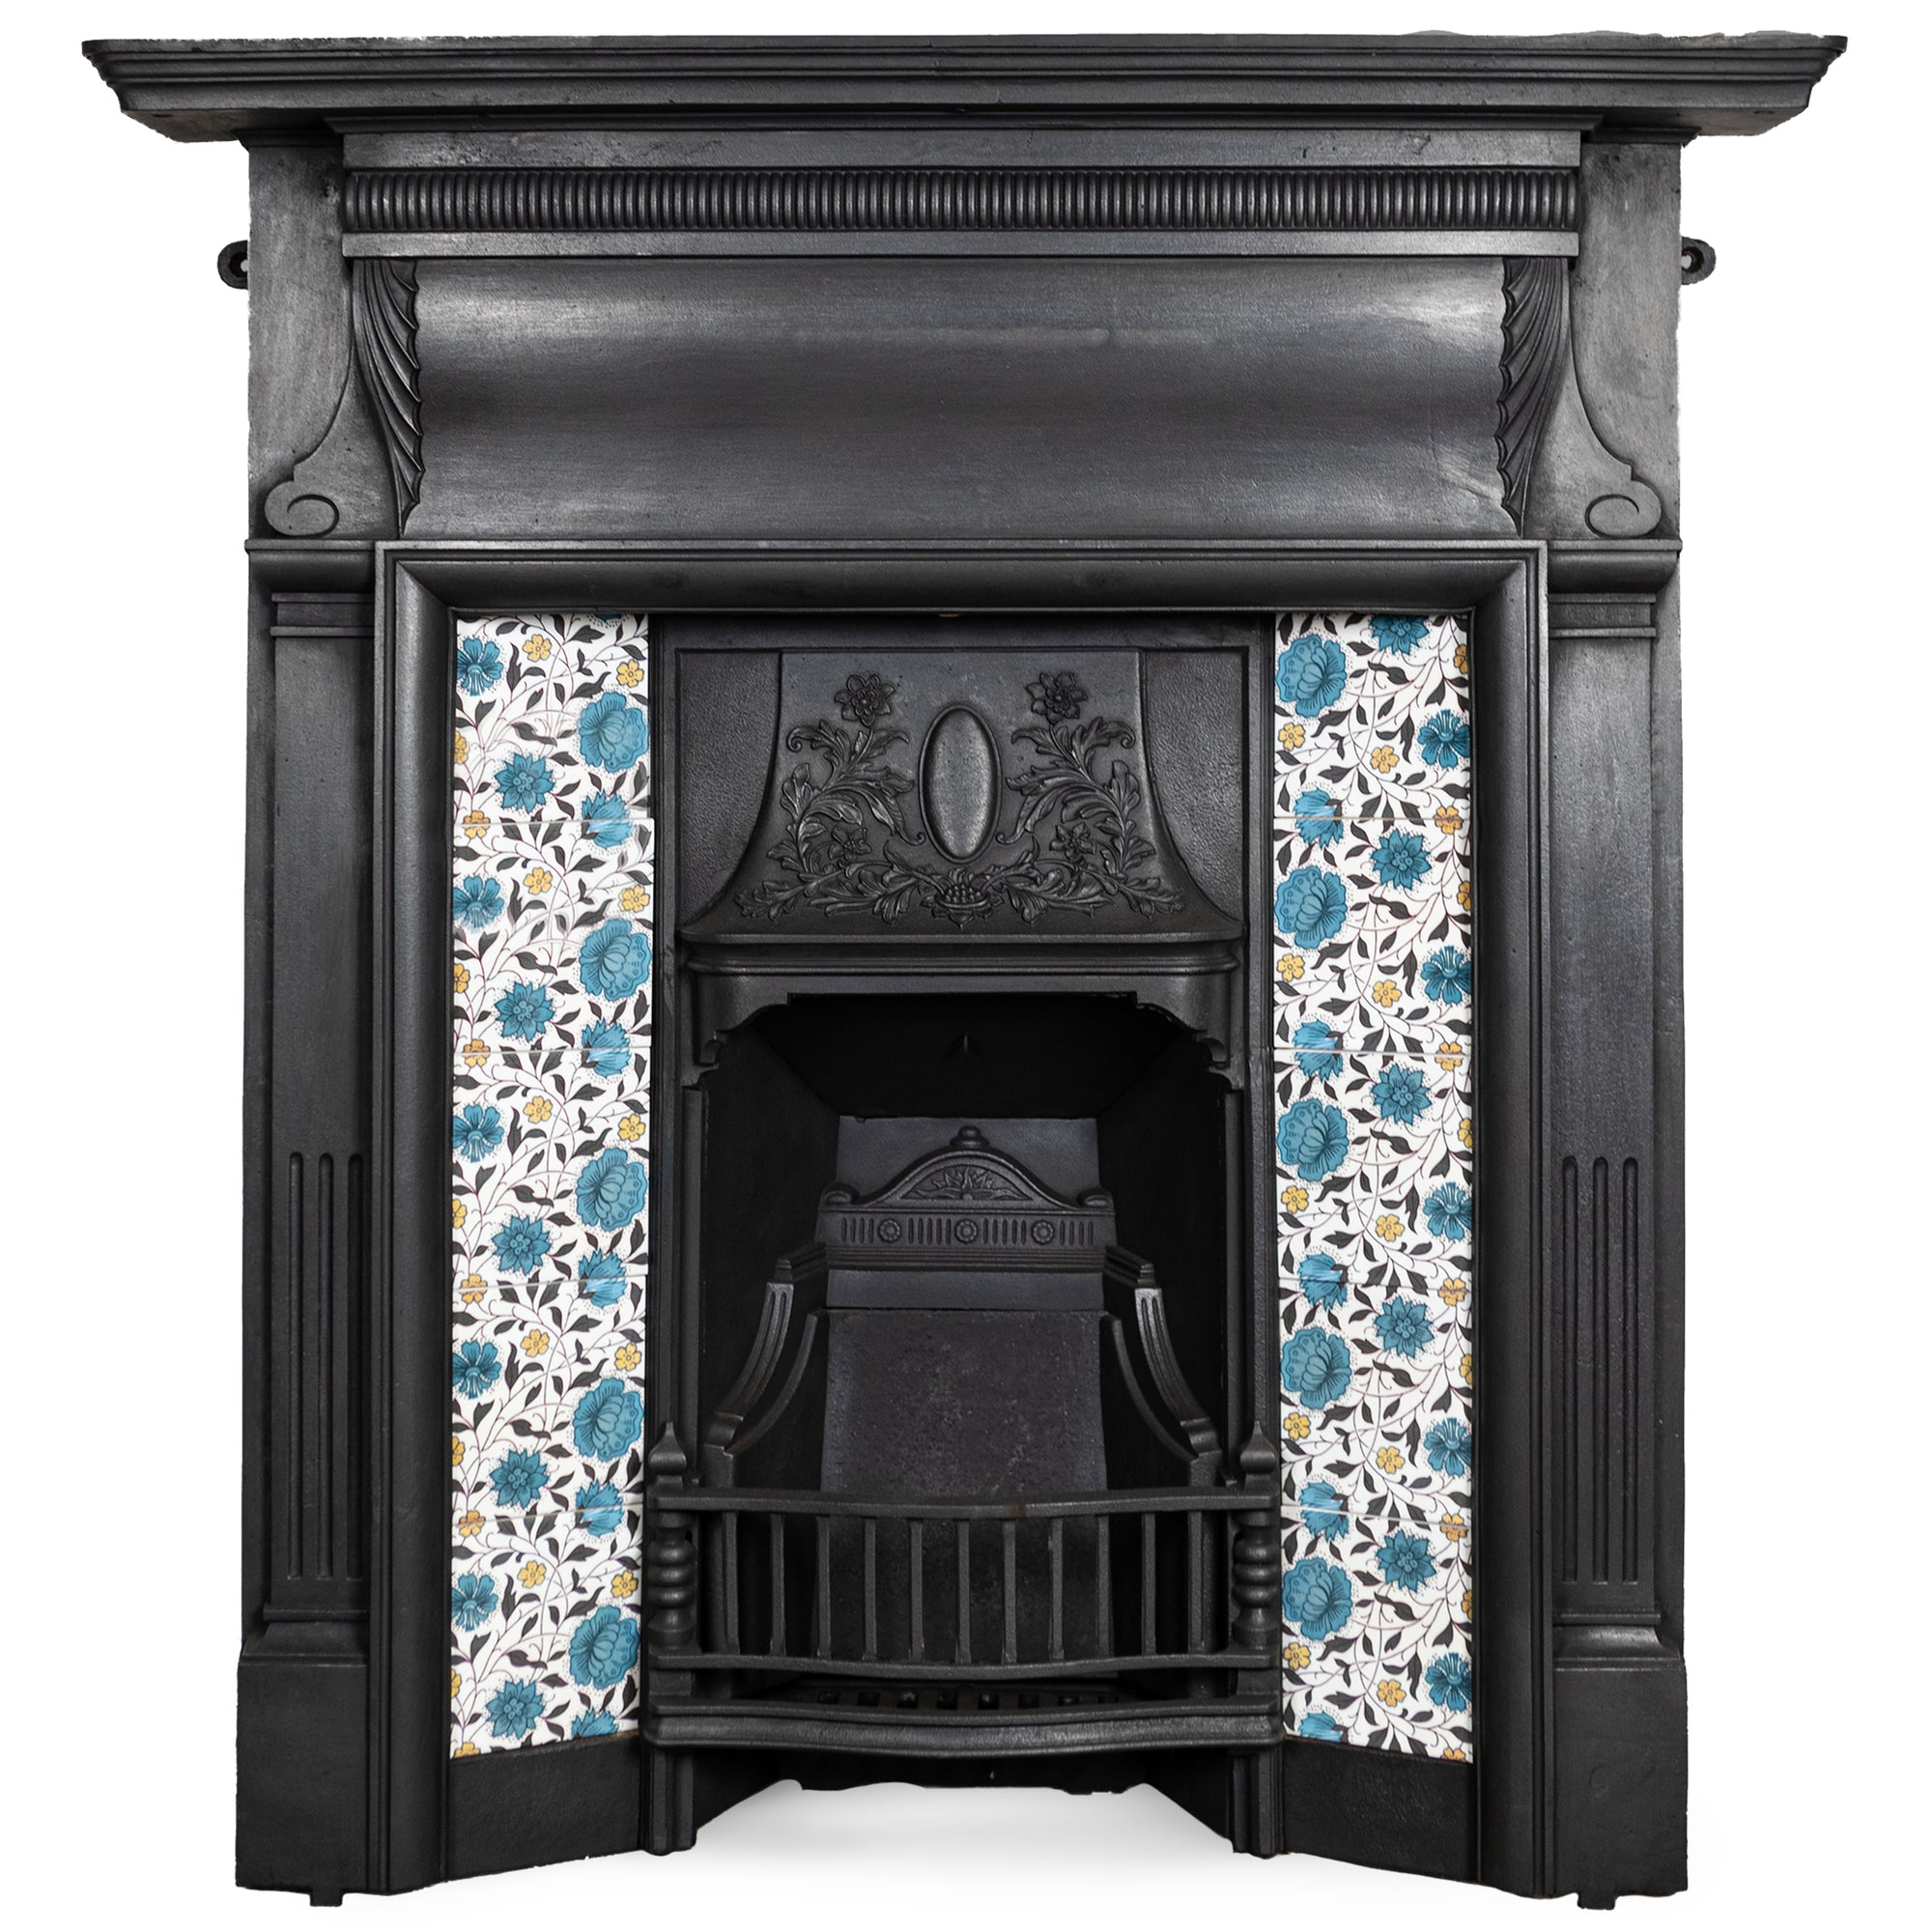 Antique Cast Iron Combination Fireplace with Blue Floral Tiles | The Architectural Forum